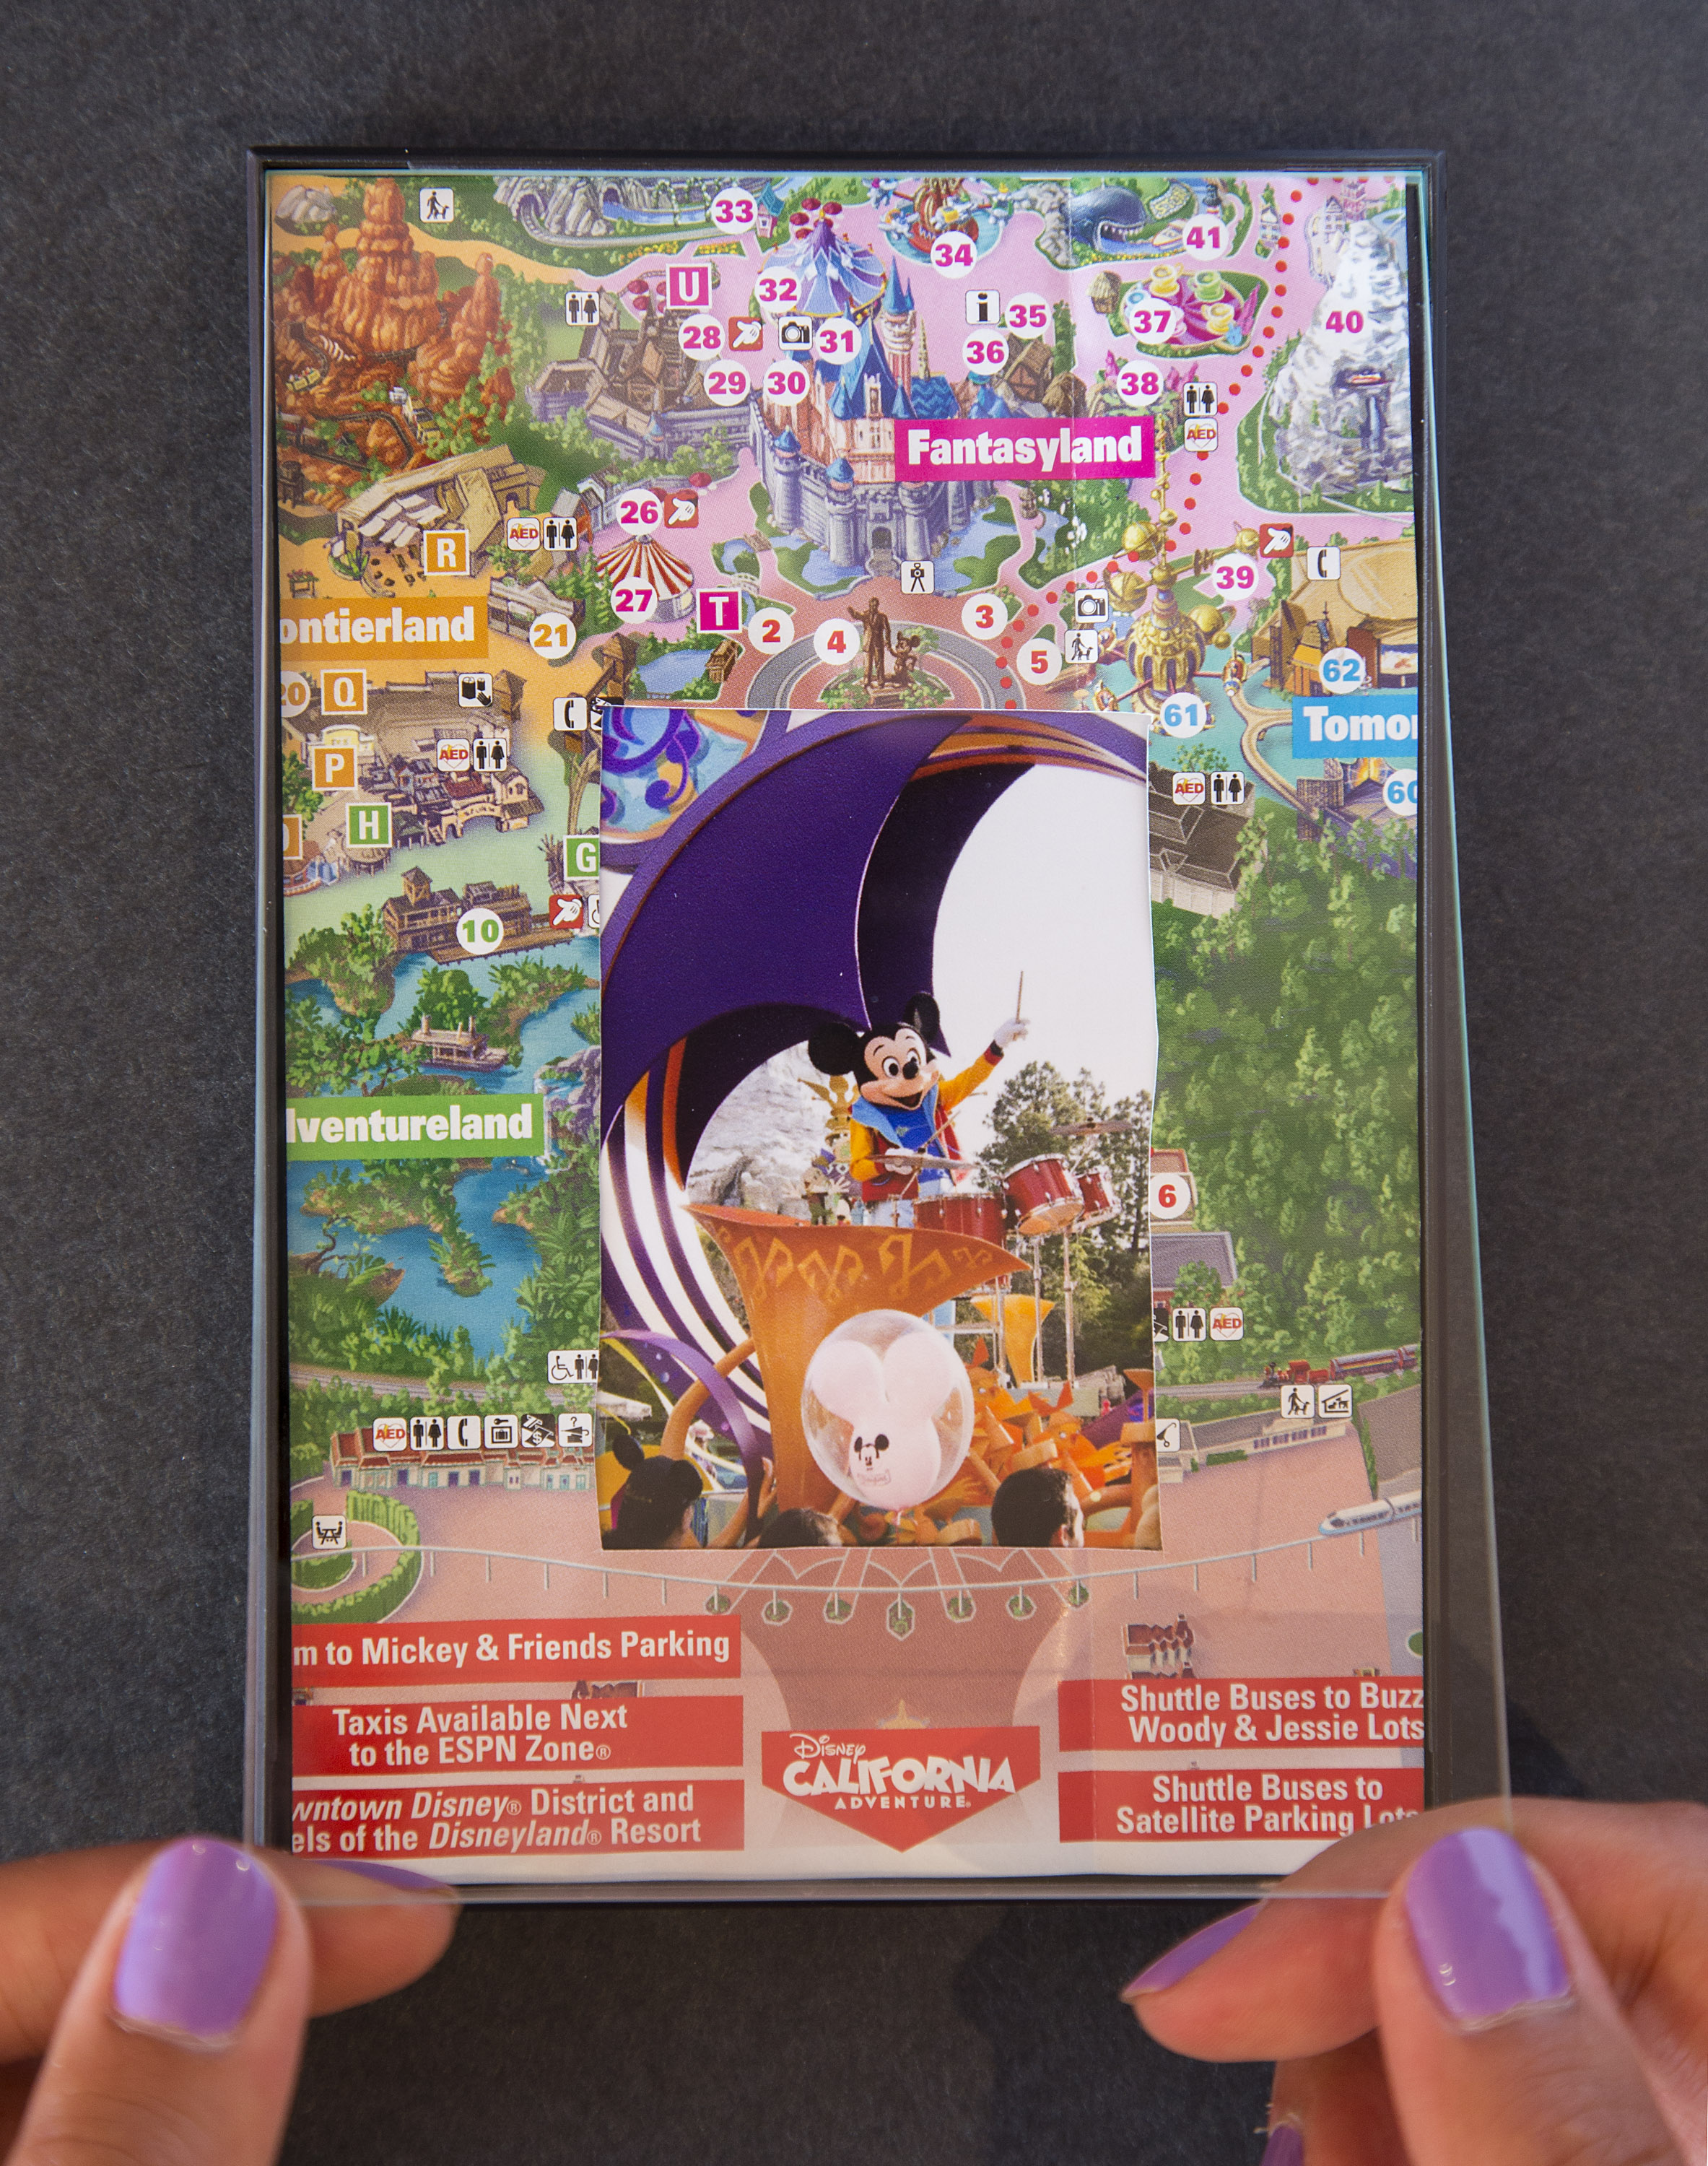 Disney Parks Show Your DIY Disney Side: Disney Parks Guide Map Photo Mat